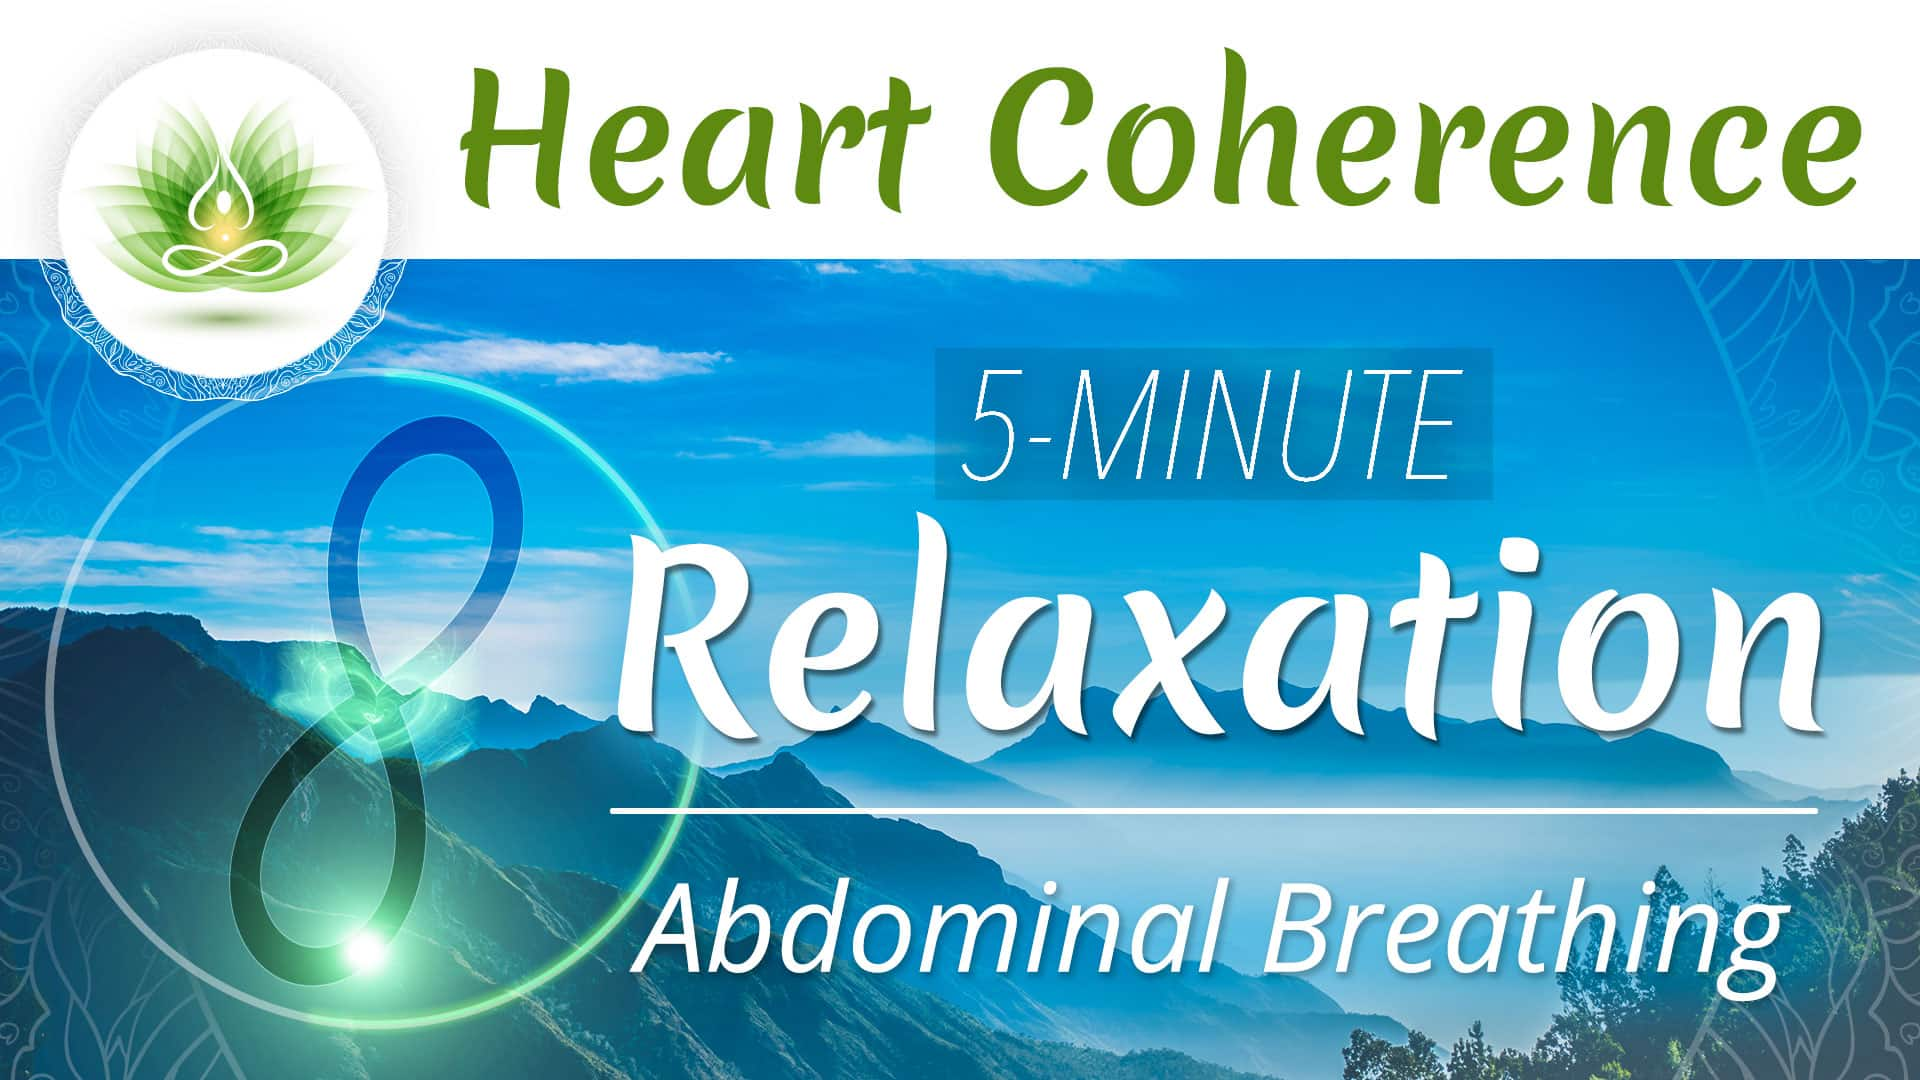 Heart Coherence - Relaxation